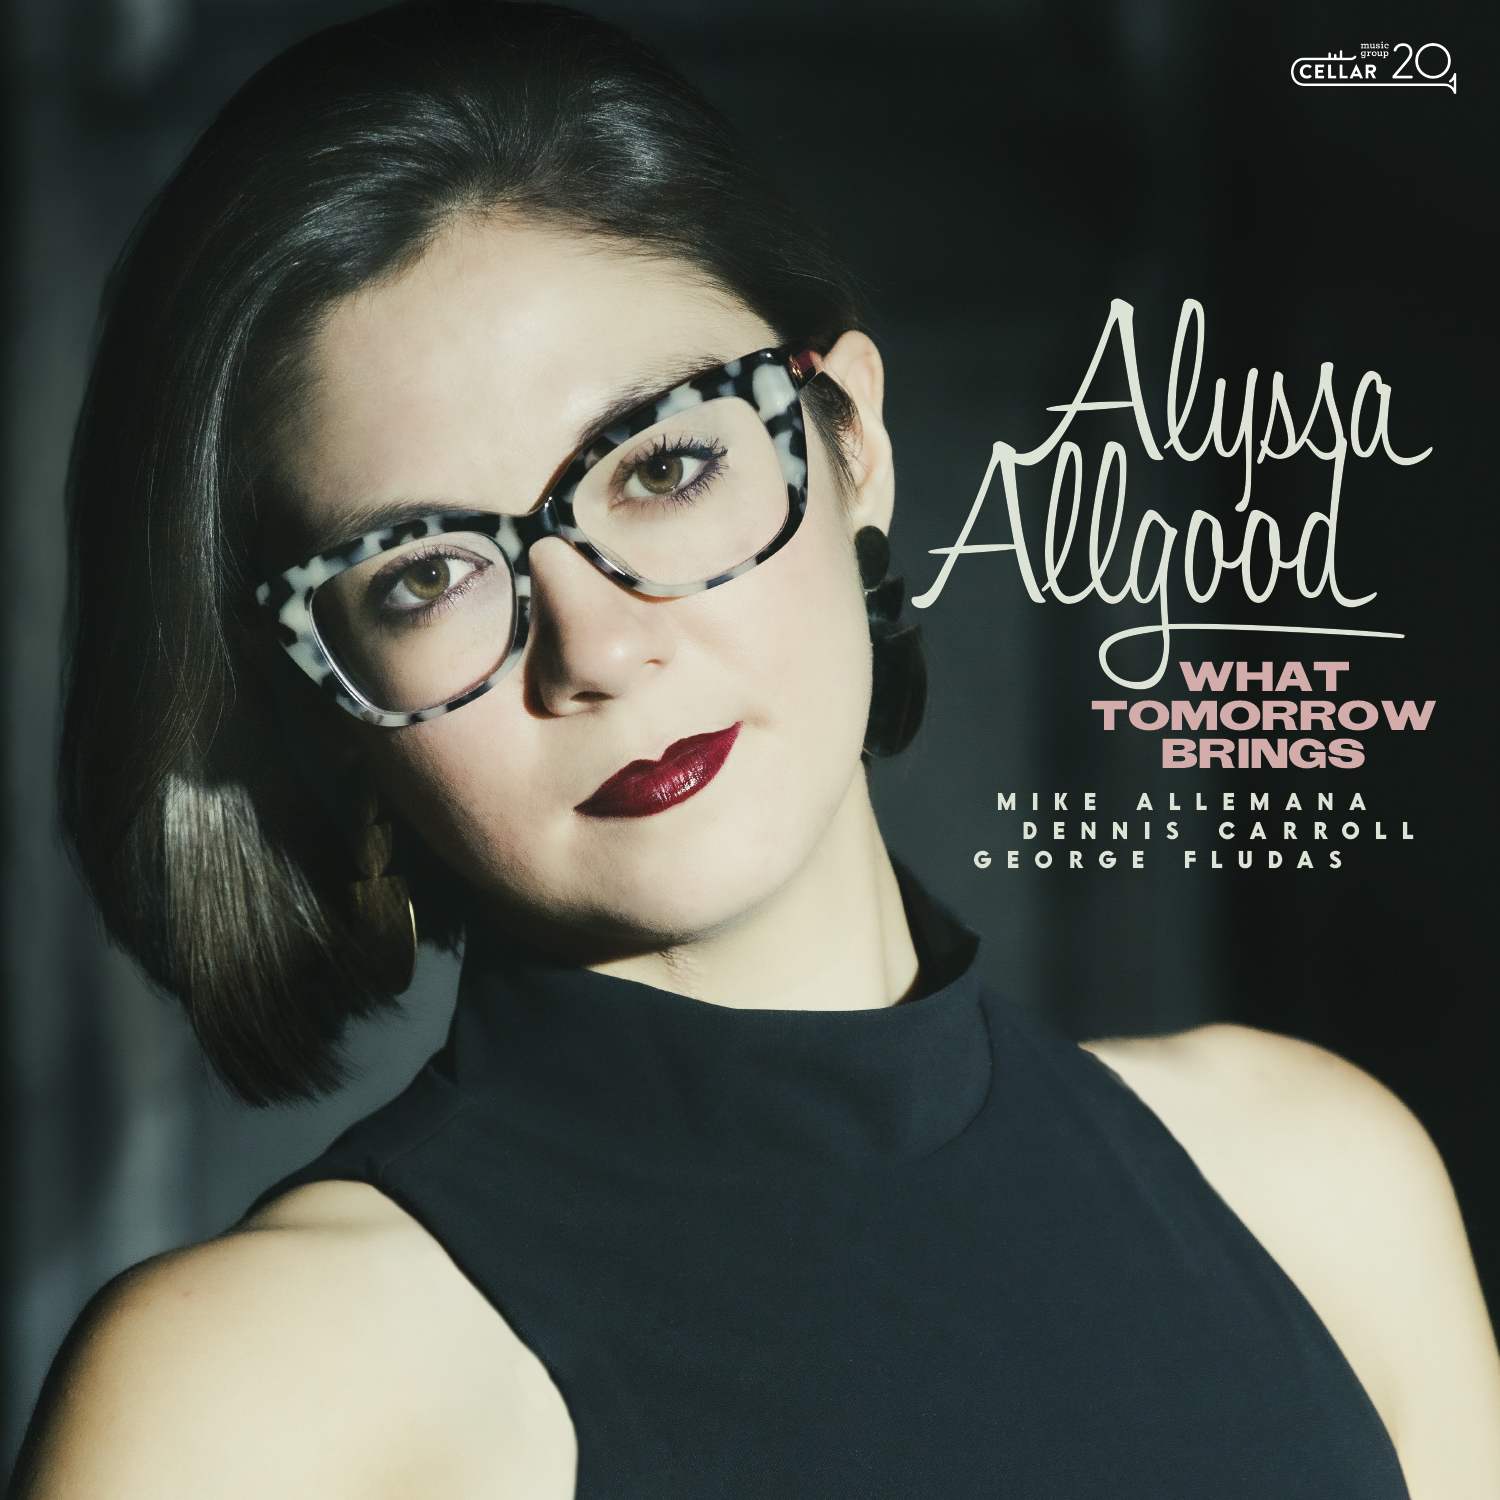 NEW RELEASE: Alyssa Allgood's WHAT TOMORROW BRINGS due out on April 9, 2021 via Cellar Music Group